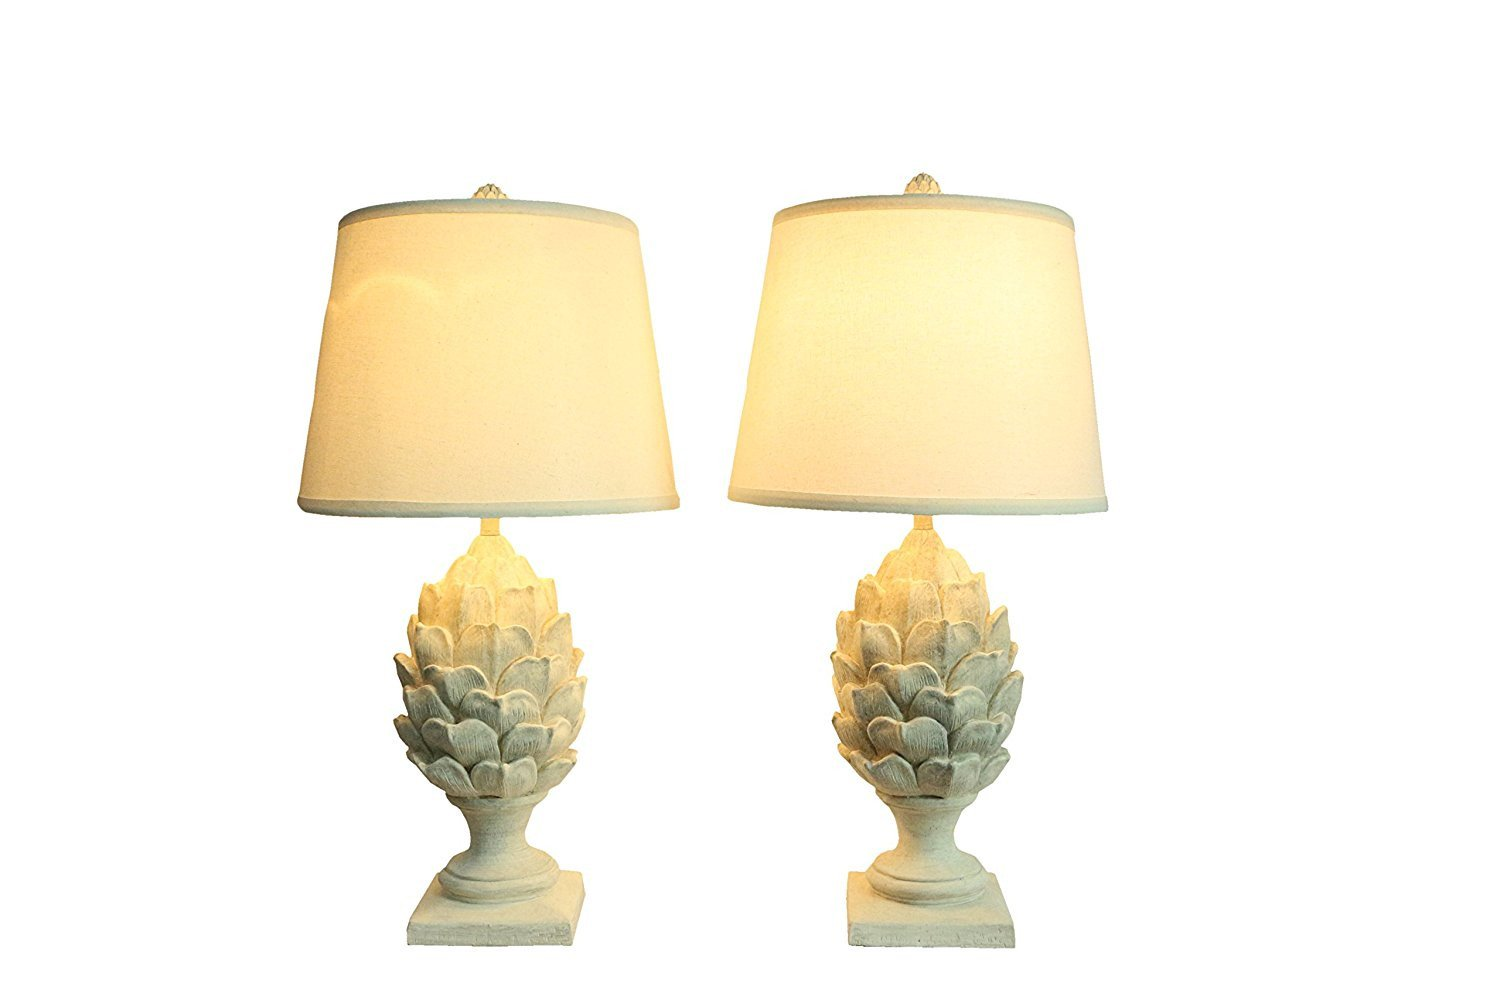 Set of 2 Artichoke Table Lamps, Weathered White - Set Of 2 Artichoke Table Lamps, Weathered White – Urbanest